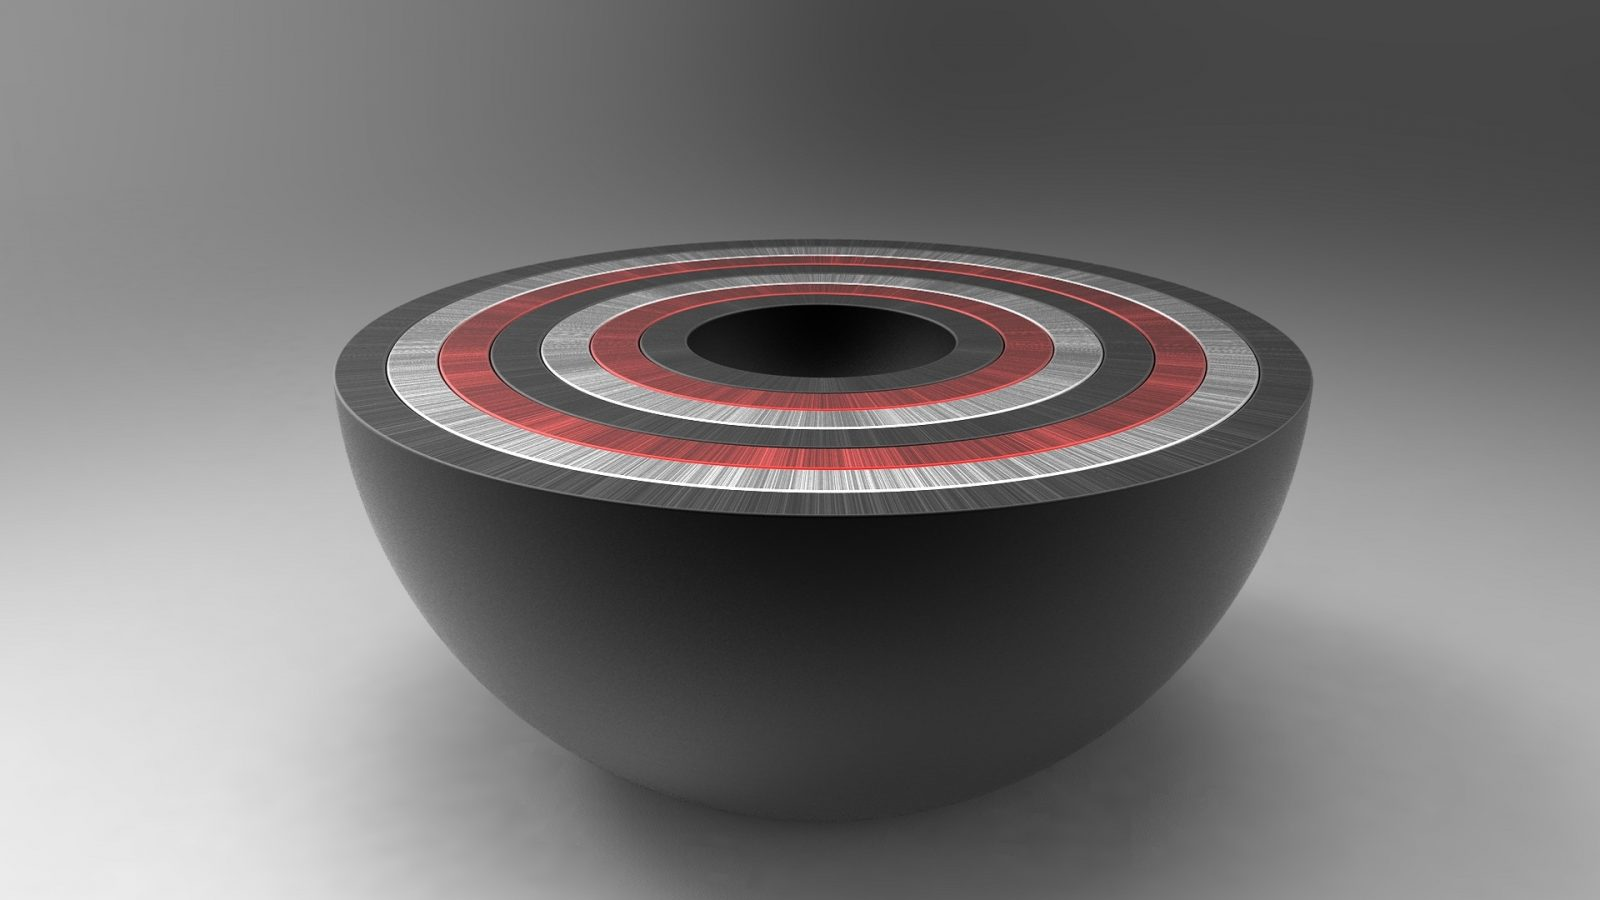 Concentric Bowls